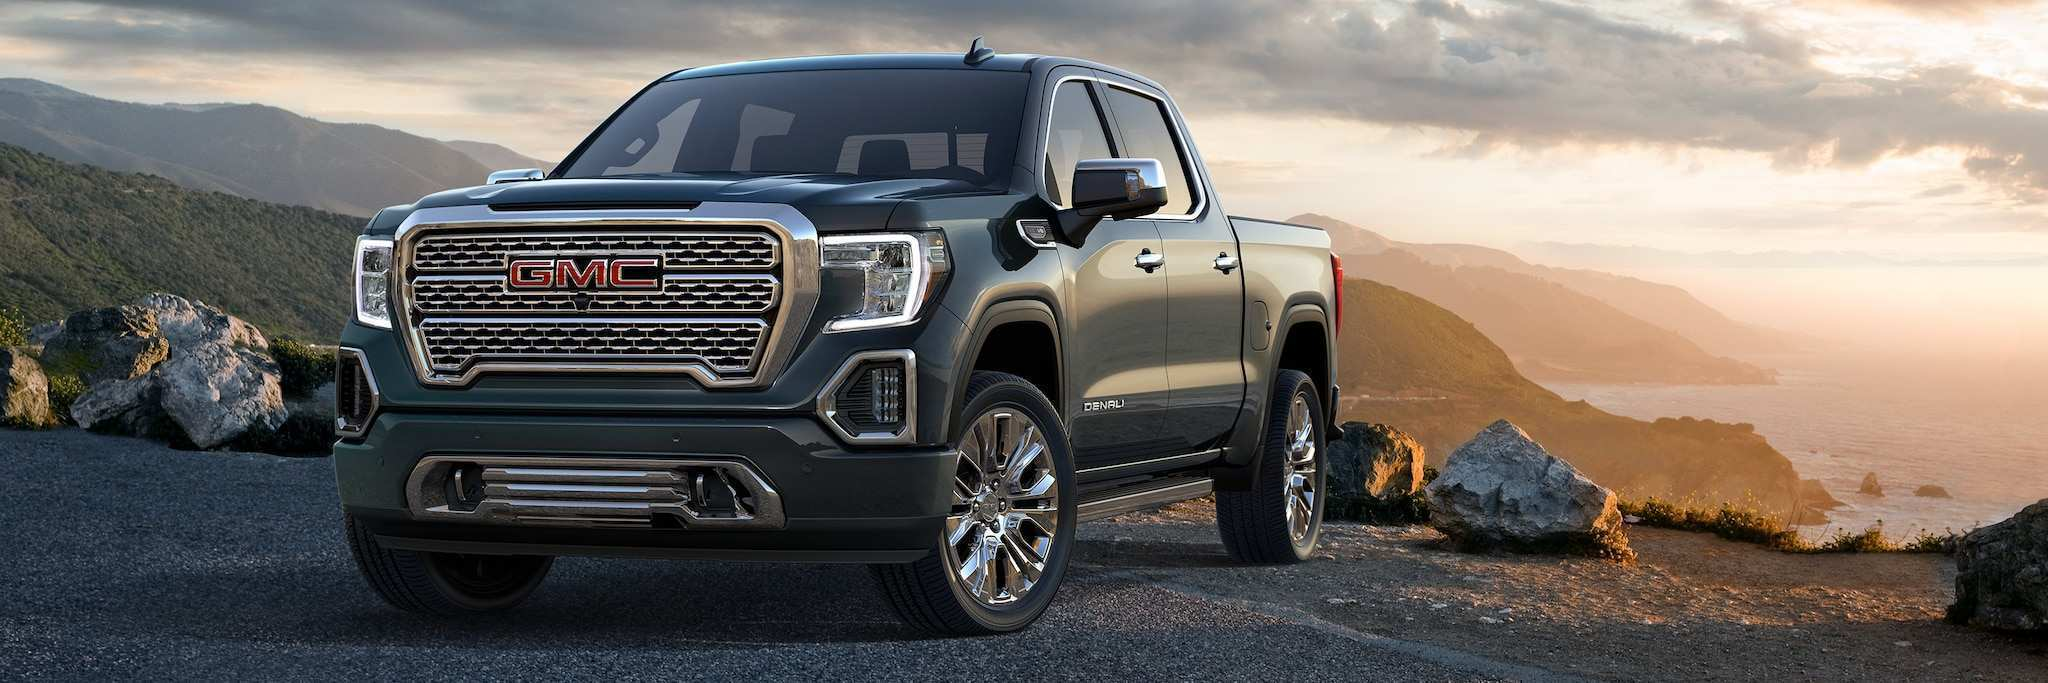 51 All New 2019 Gmc Sierra Release Date Picture